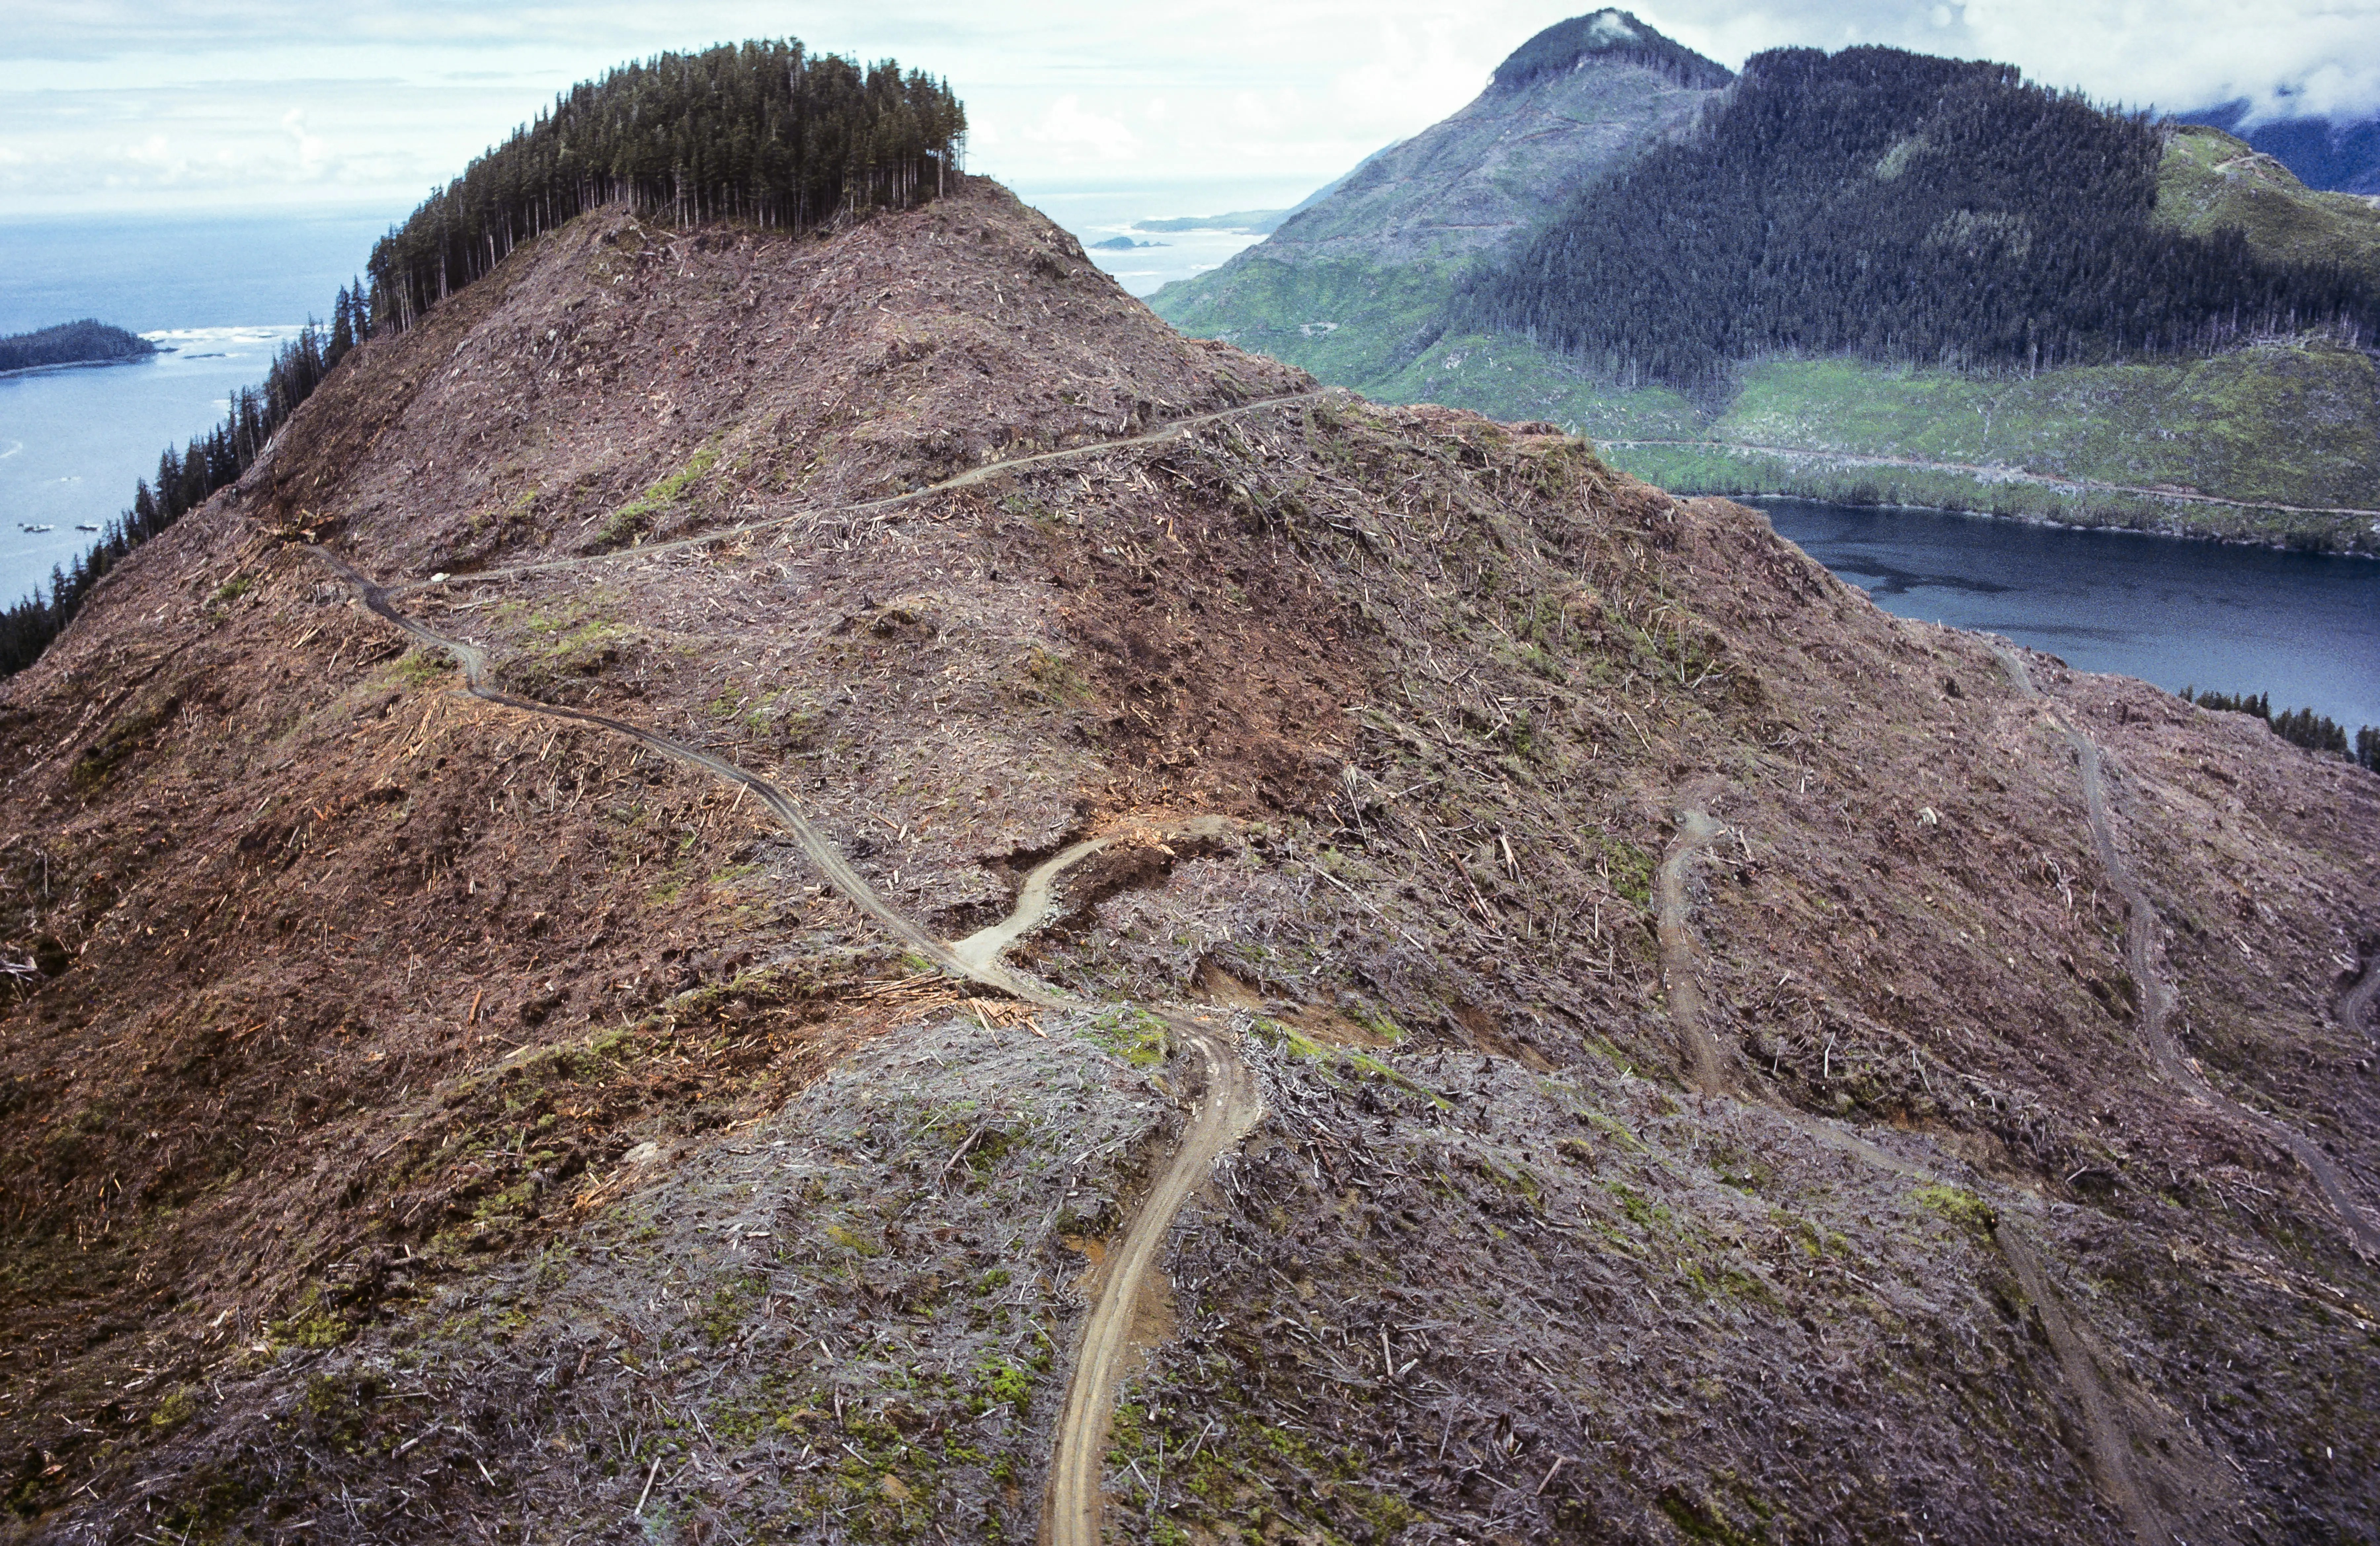 Canada has not been kind to its native forests, like this one on Vancouver Island.